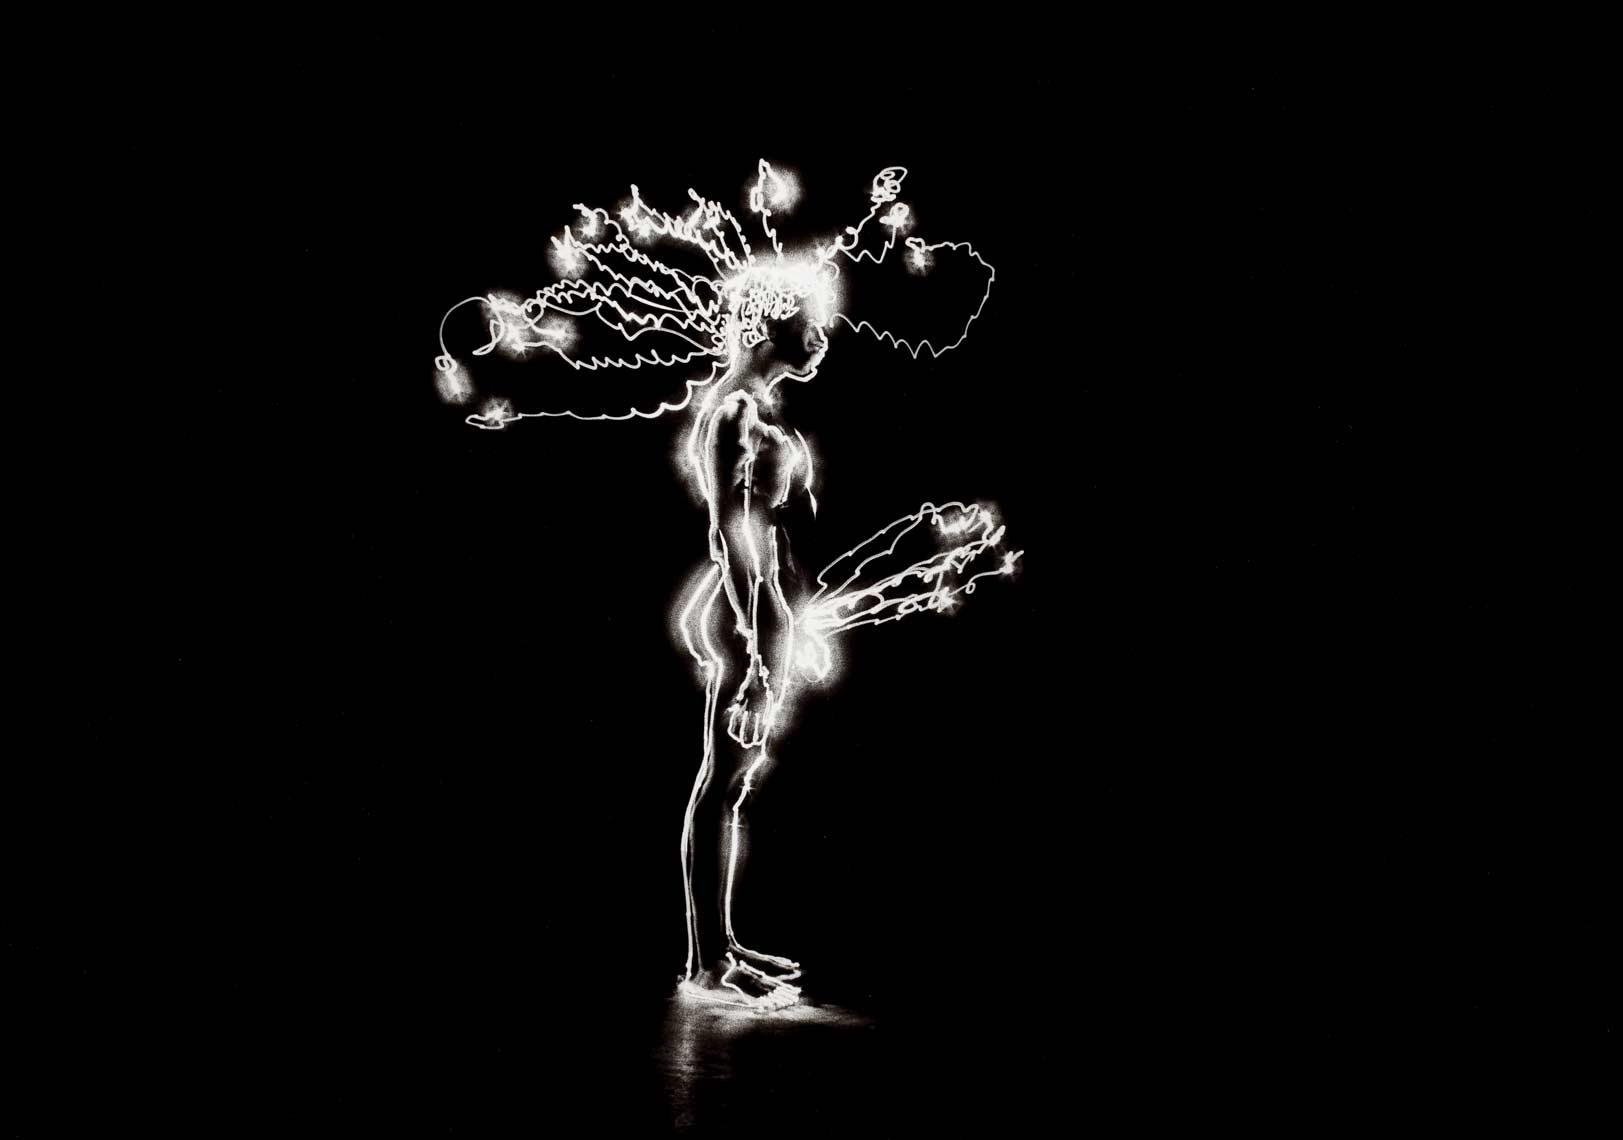 David Lebe; Angelo Electric 1979, male nude, light drawing, black and white photograph